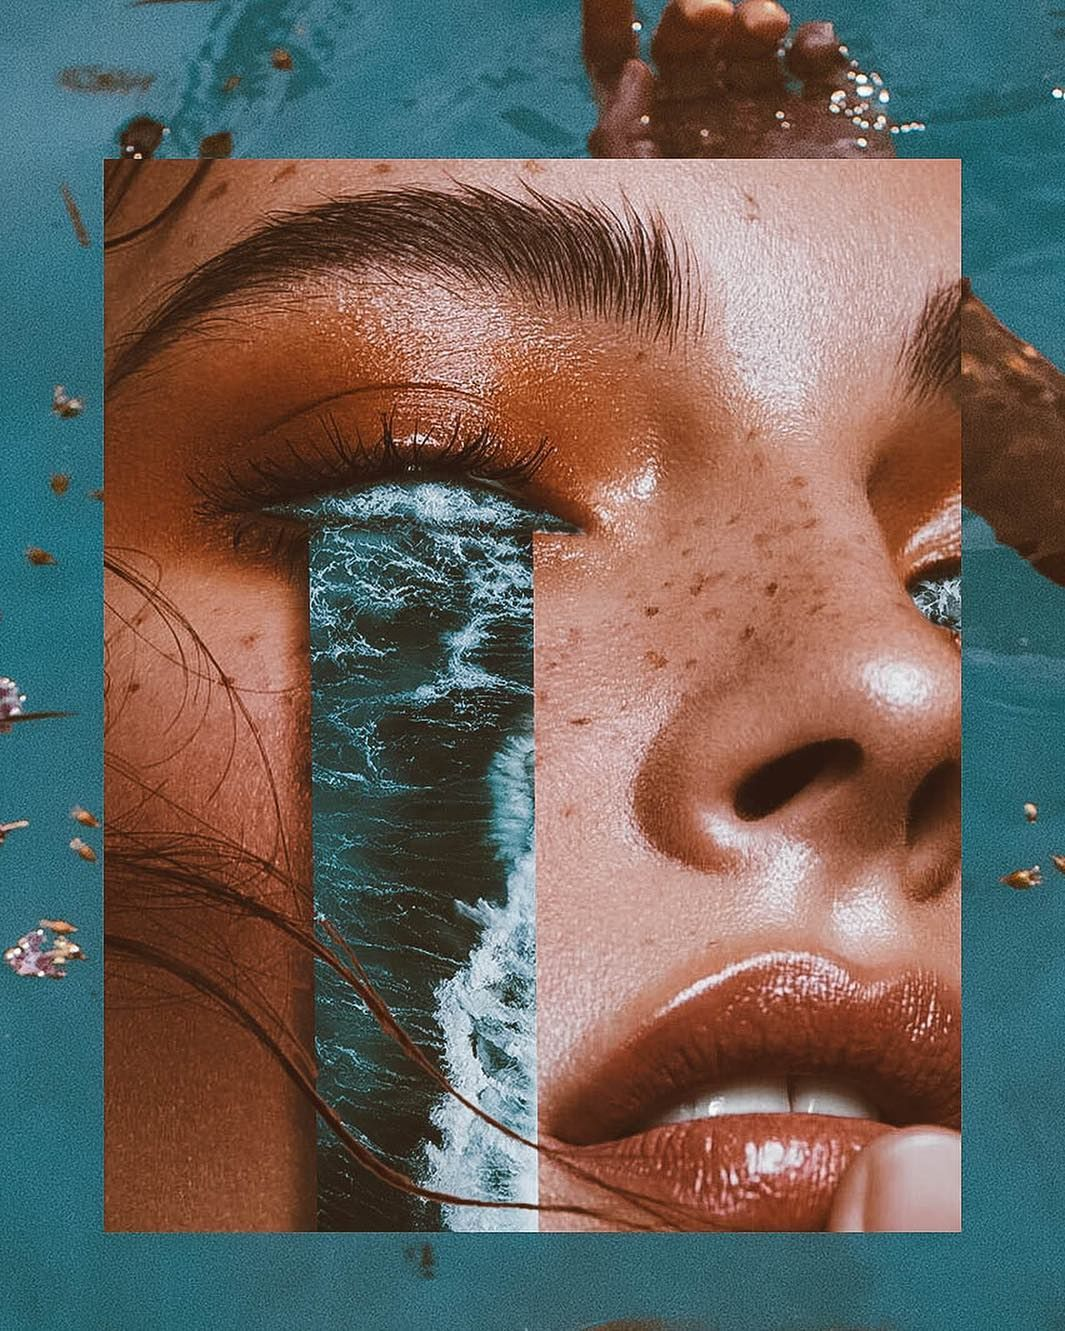 "Denis Sheckler - Surreal art on Instagram: ""water inside💮 